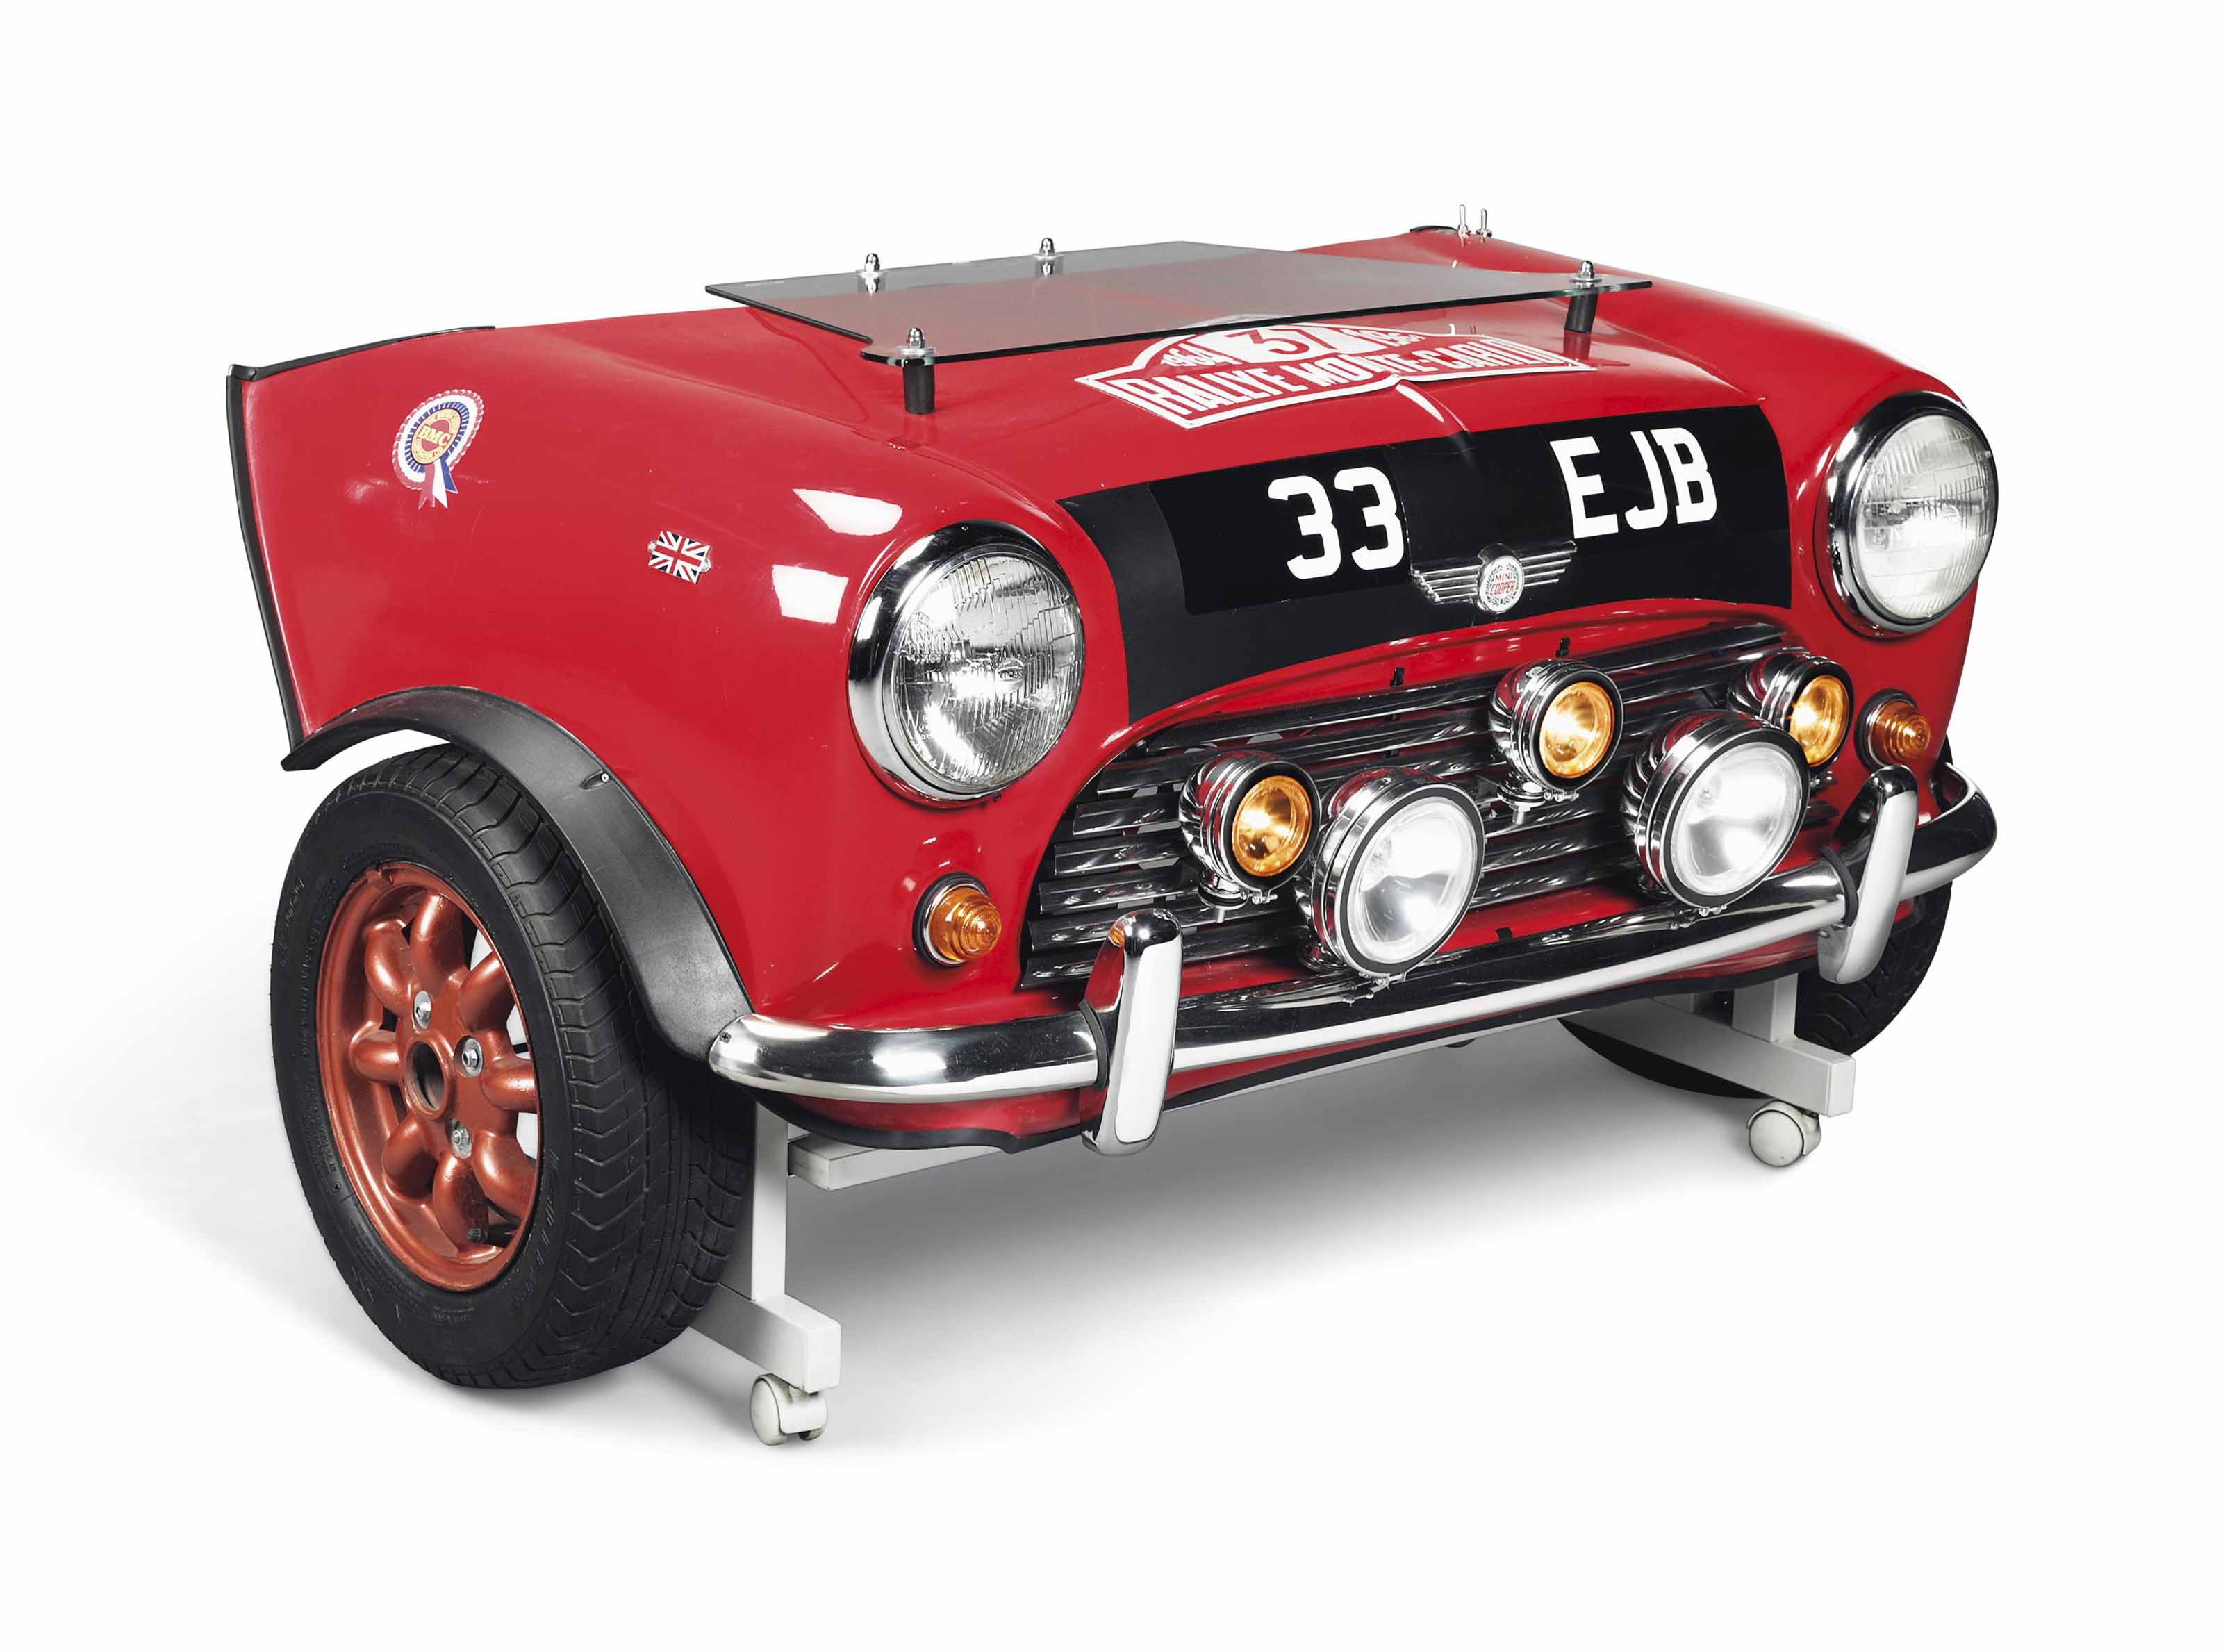 AN UNUSUAL 1964 MONTE CARLO RALLY REPLICA MINI FRONT END IN THE FORM OF A DESK